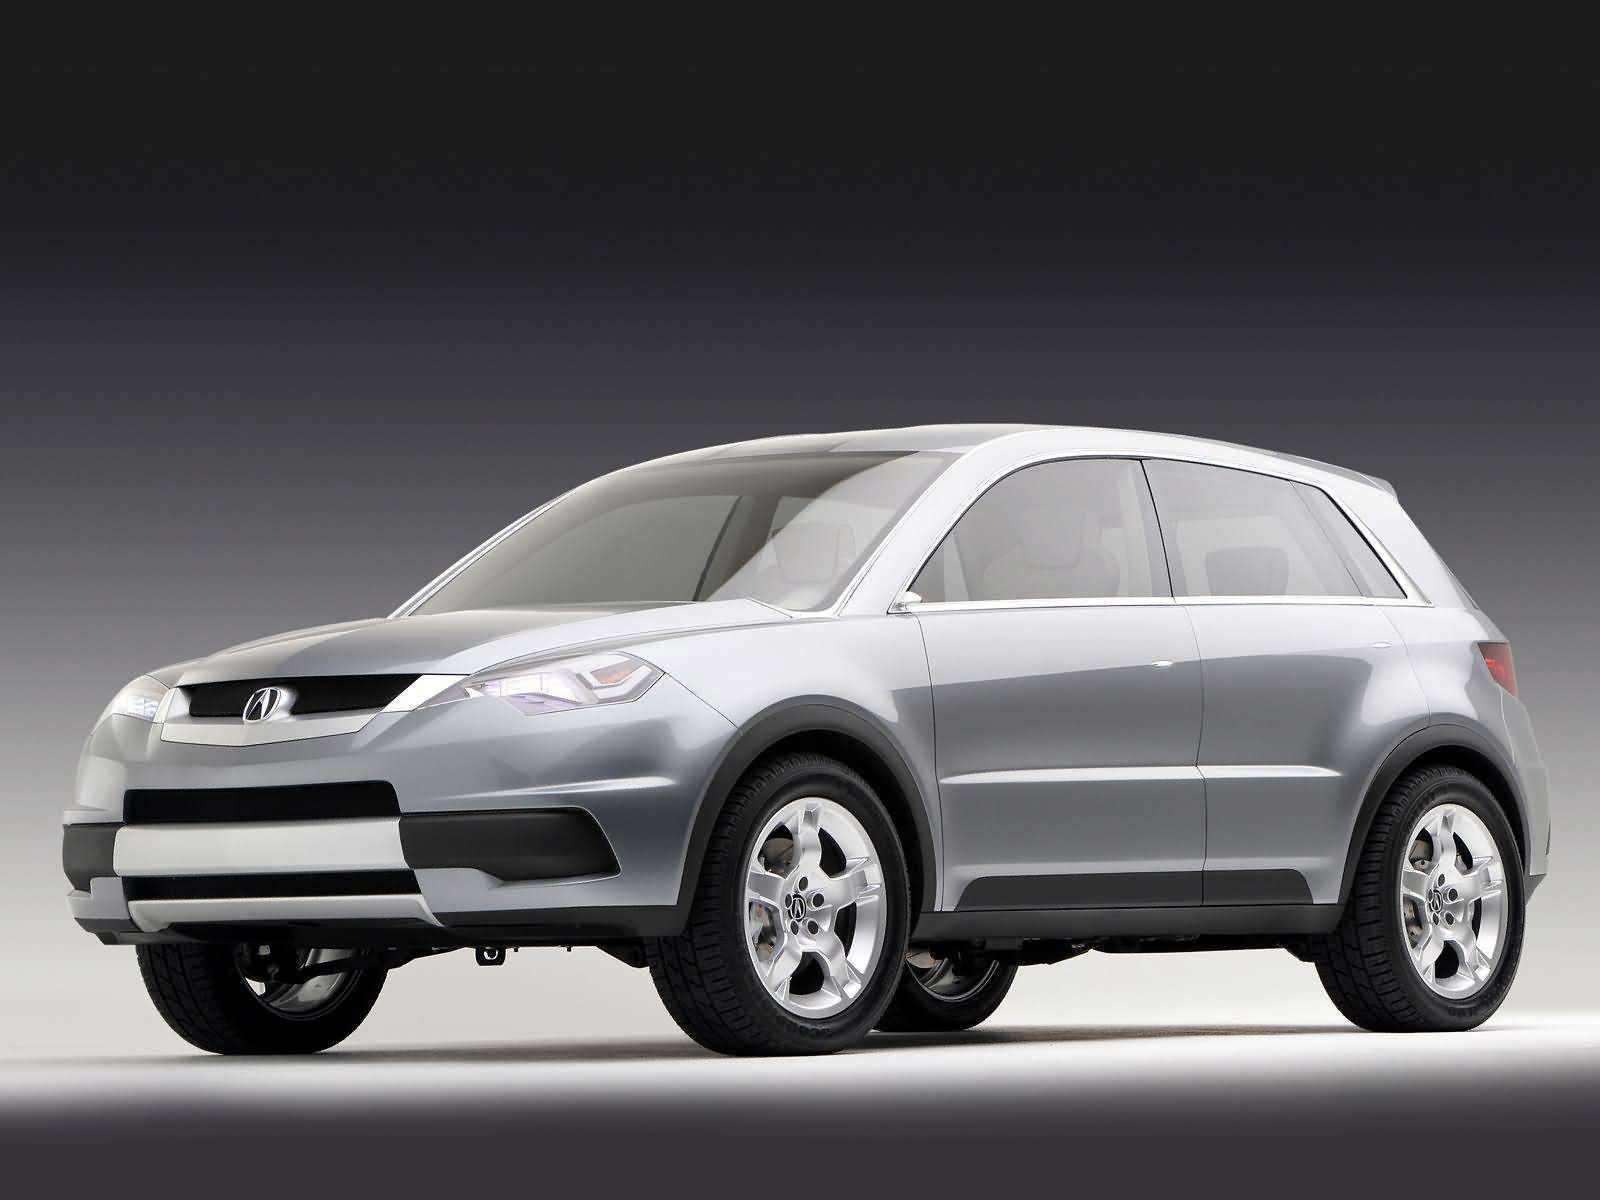 2005 Acura RDX Concept photo - 1